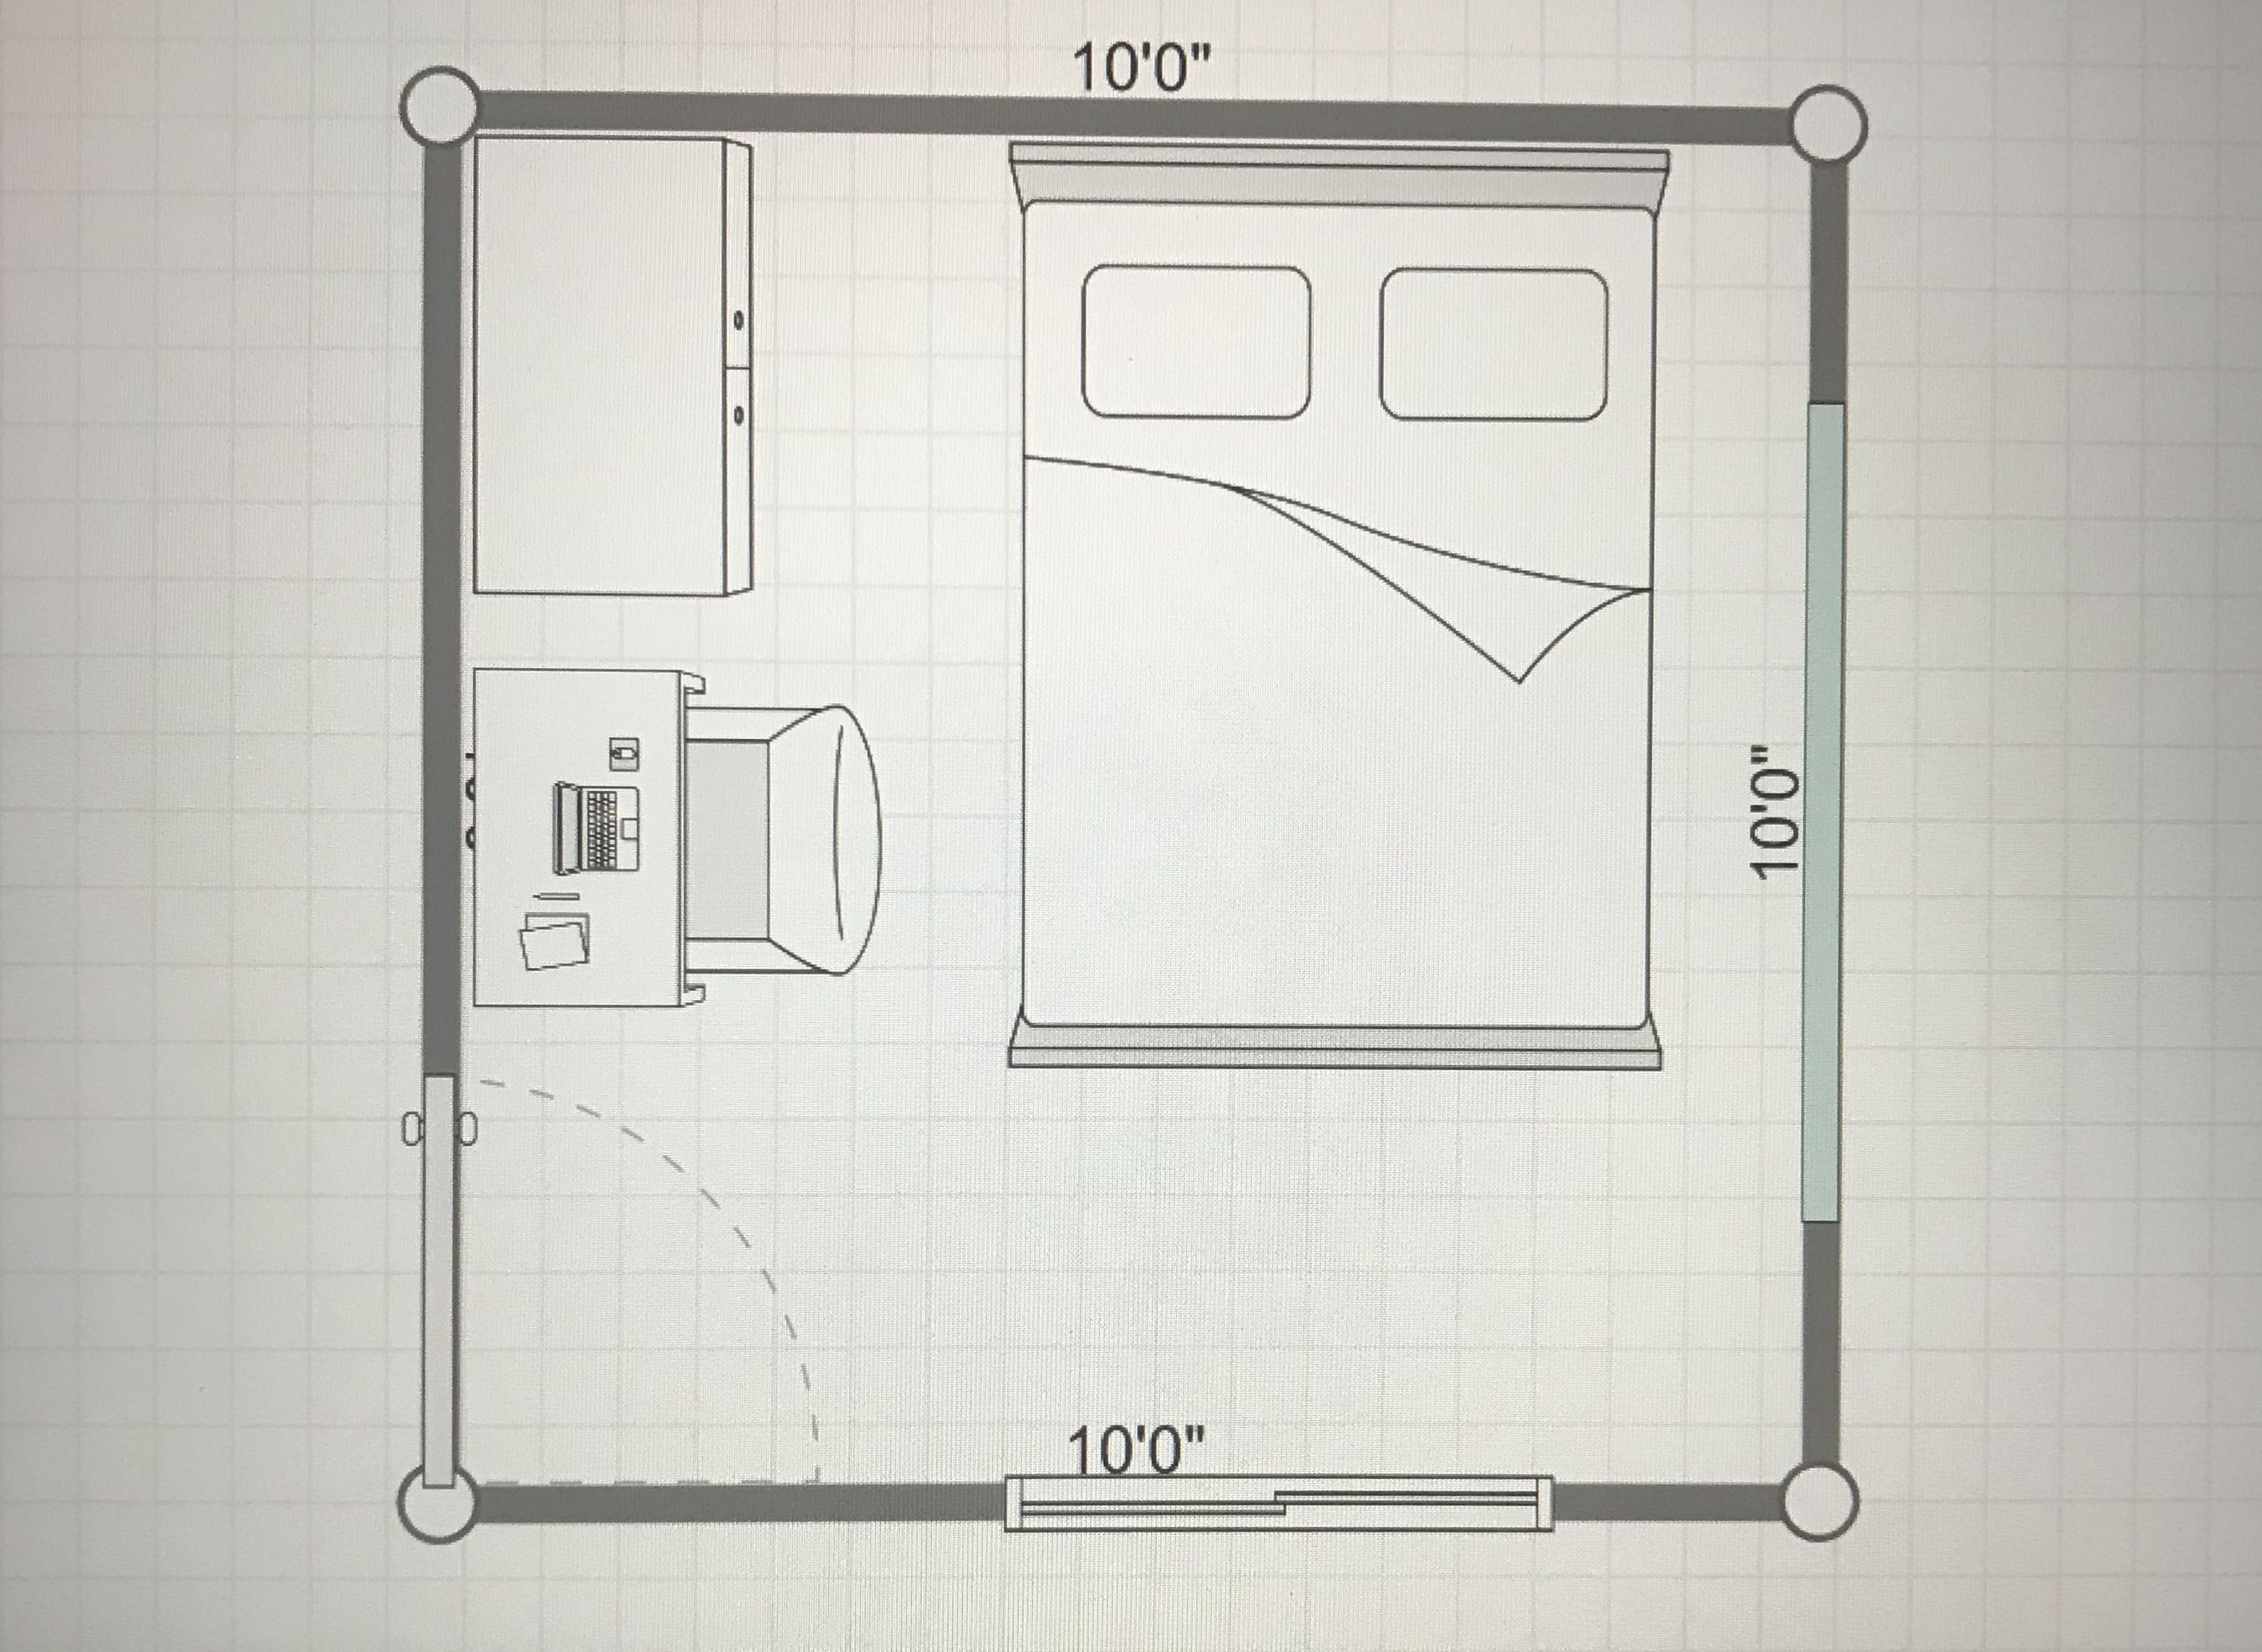 10x10 Room Small Bedroom Layout Bedroom Layouts Bedroom Furniture Layout